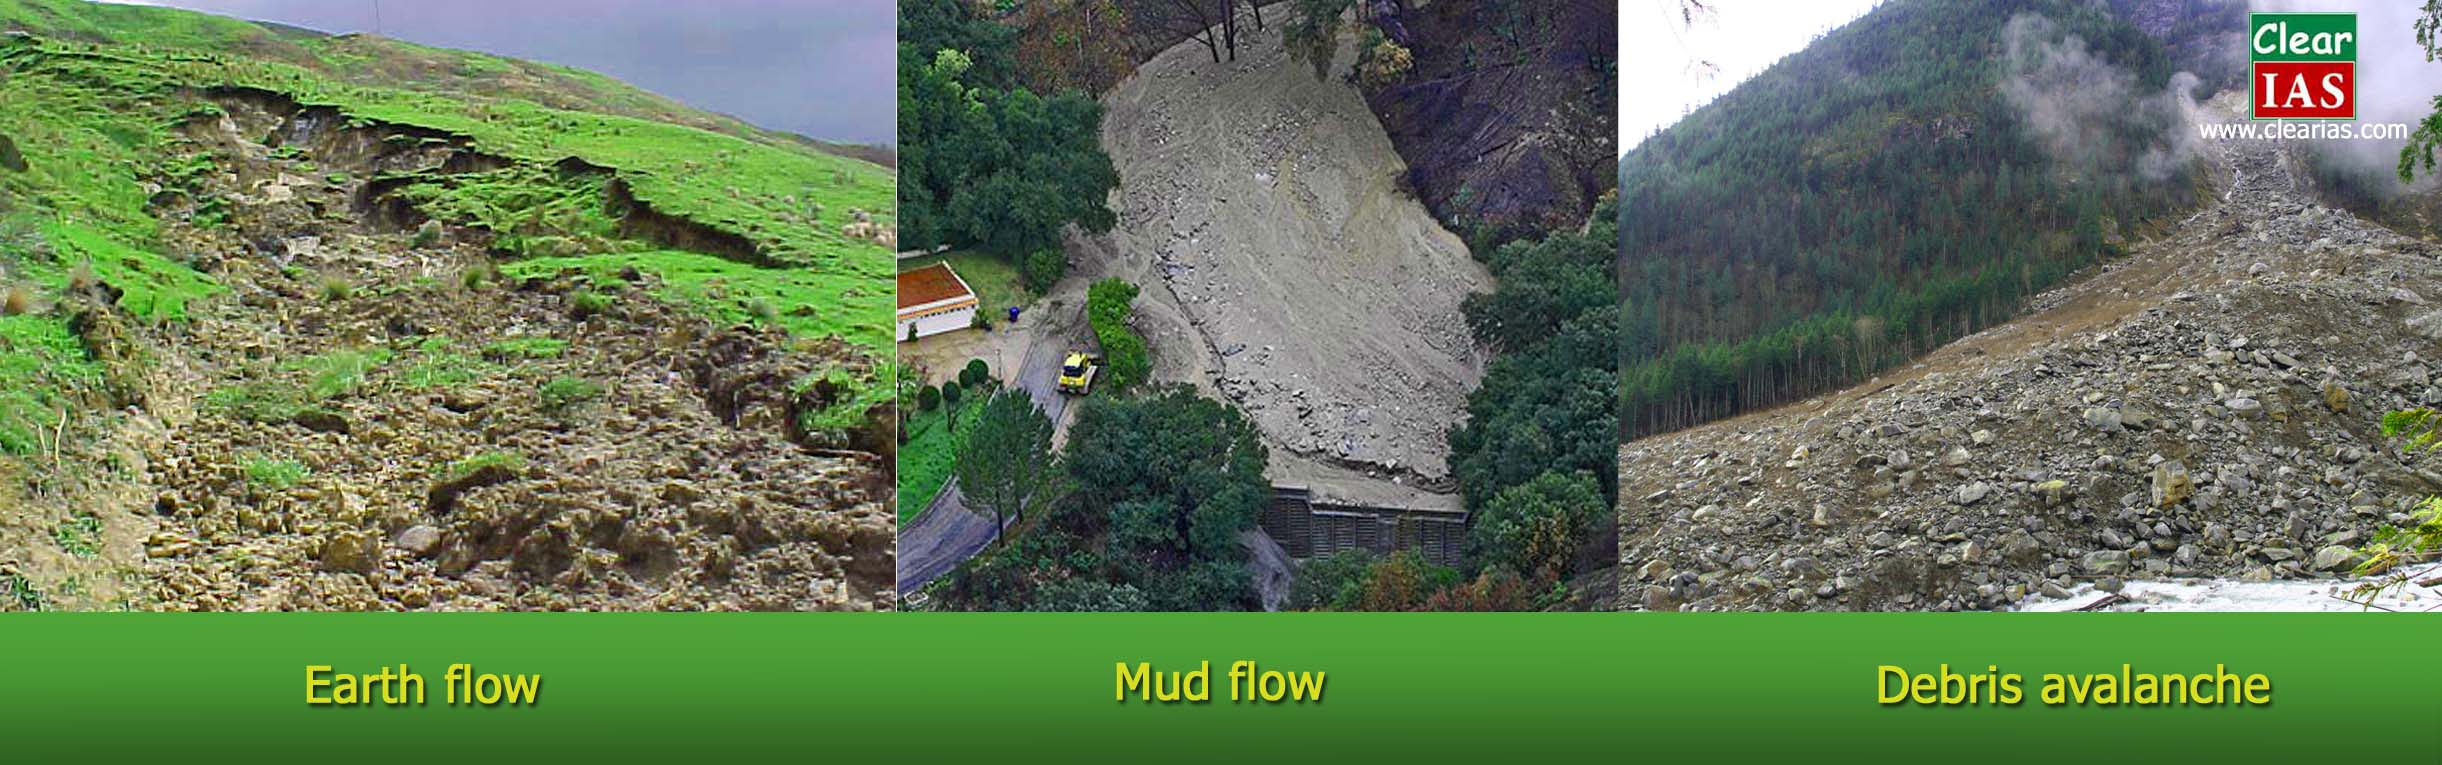 Earth flow, Mud flow, Debris Avalanche - Rapid mass movements